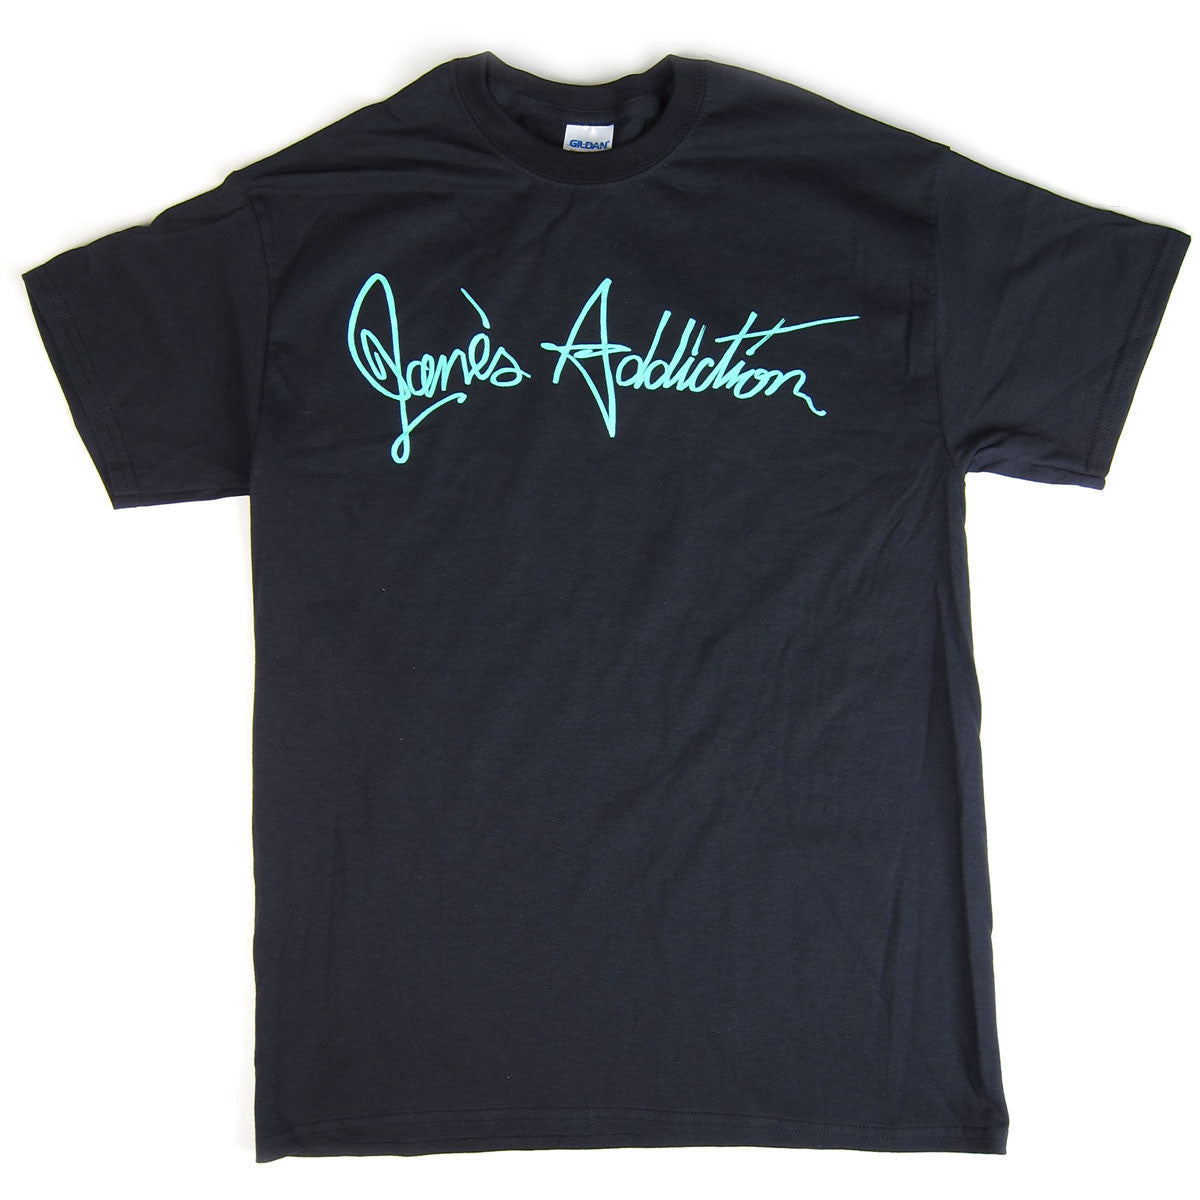 Jane's Addiction: Script Logo Shirt - Black